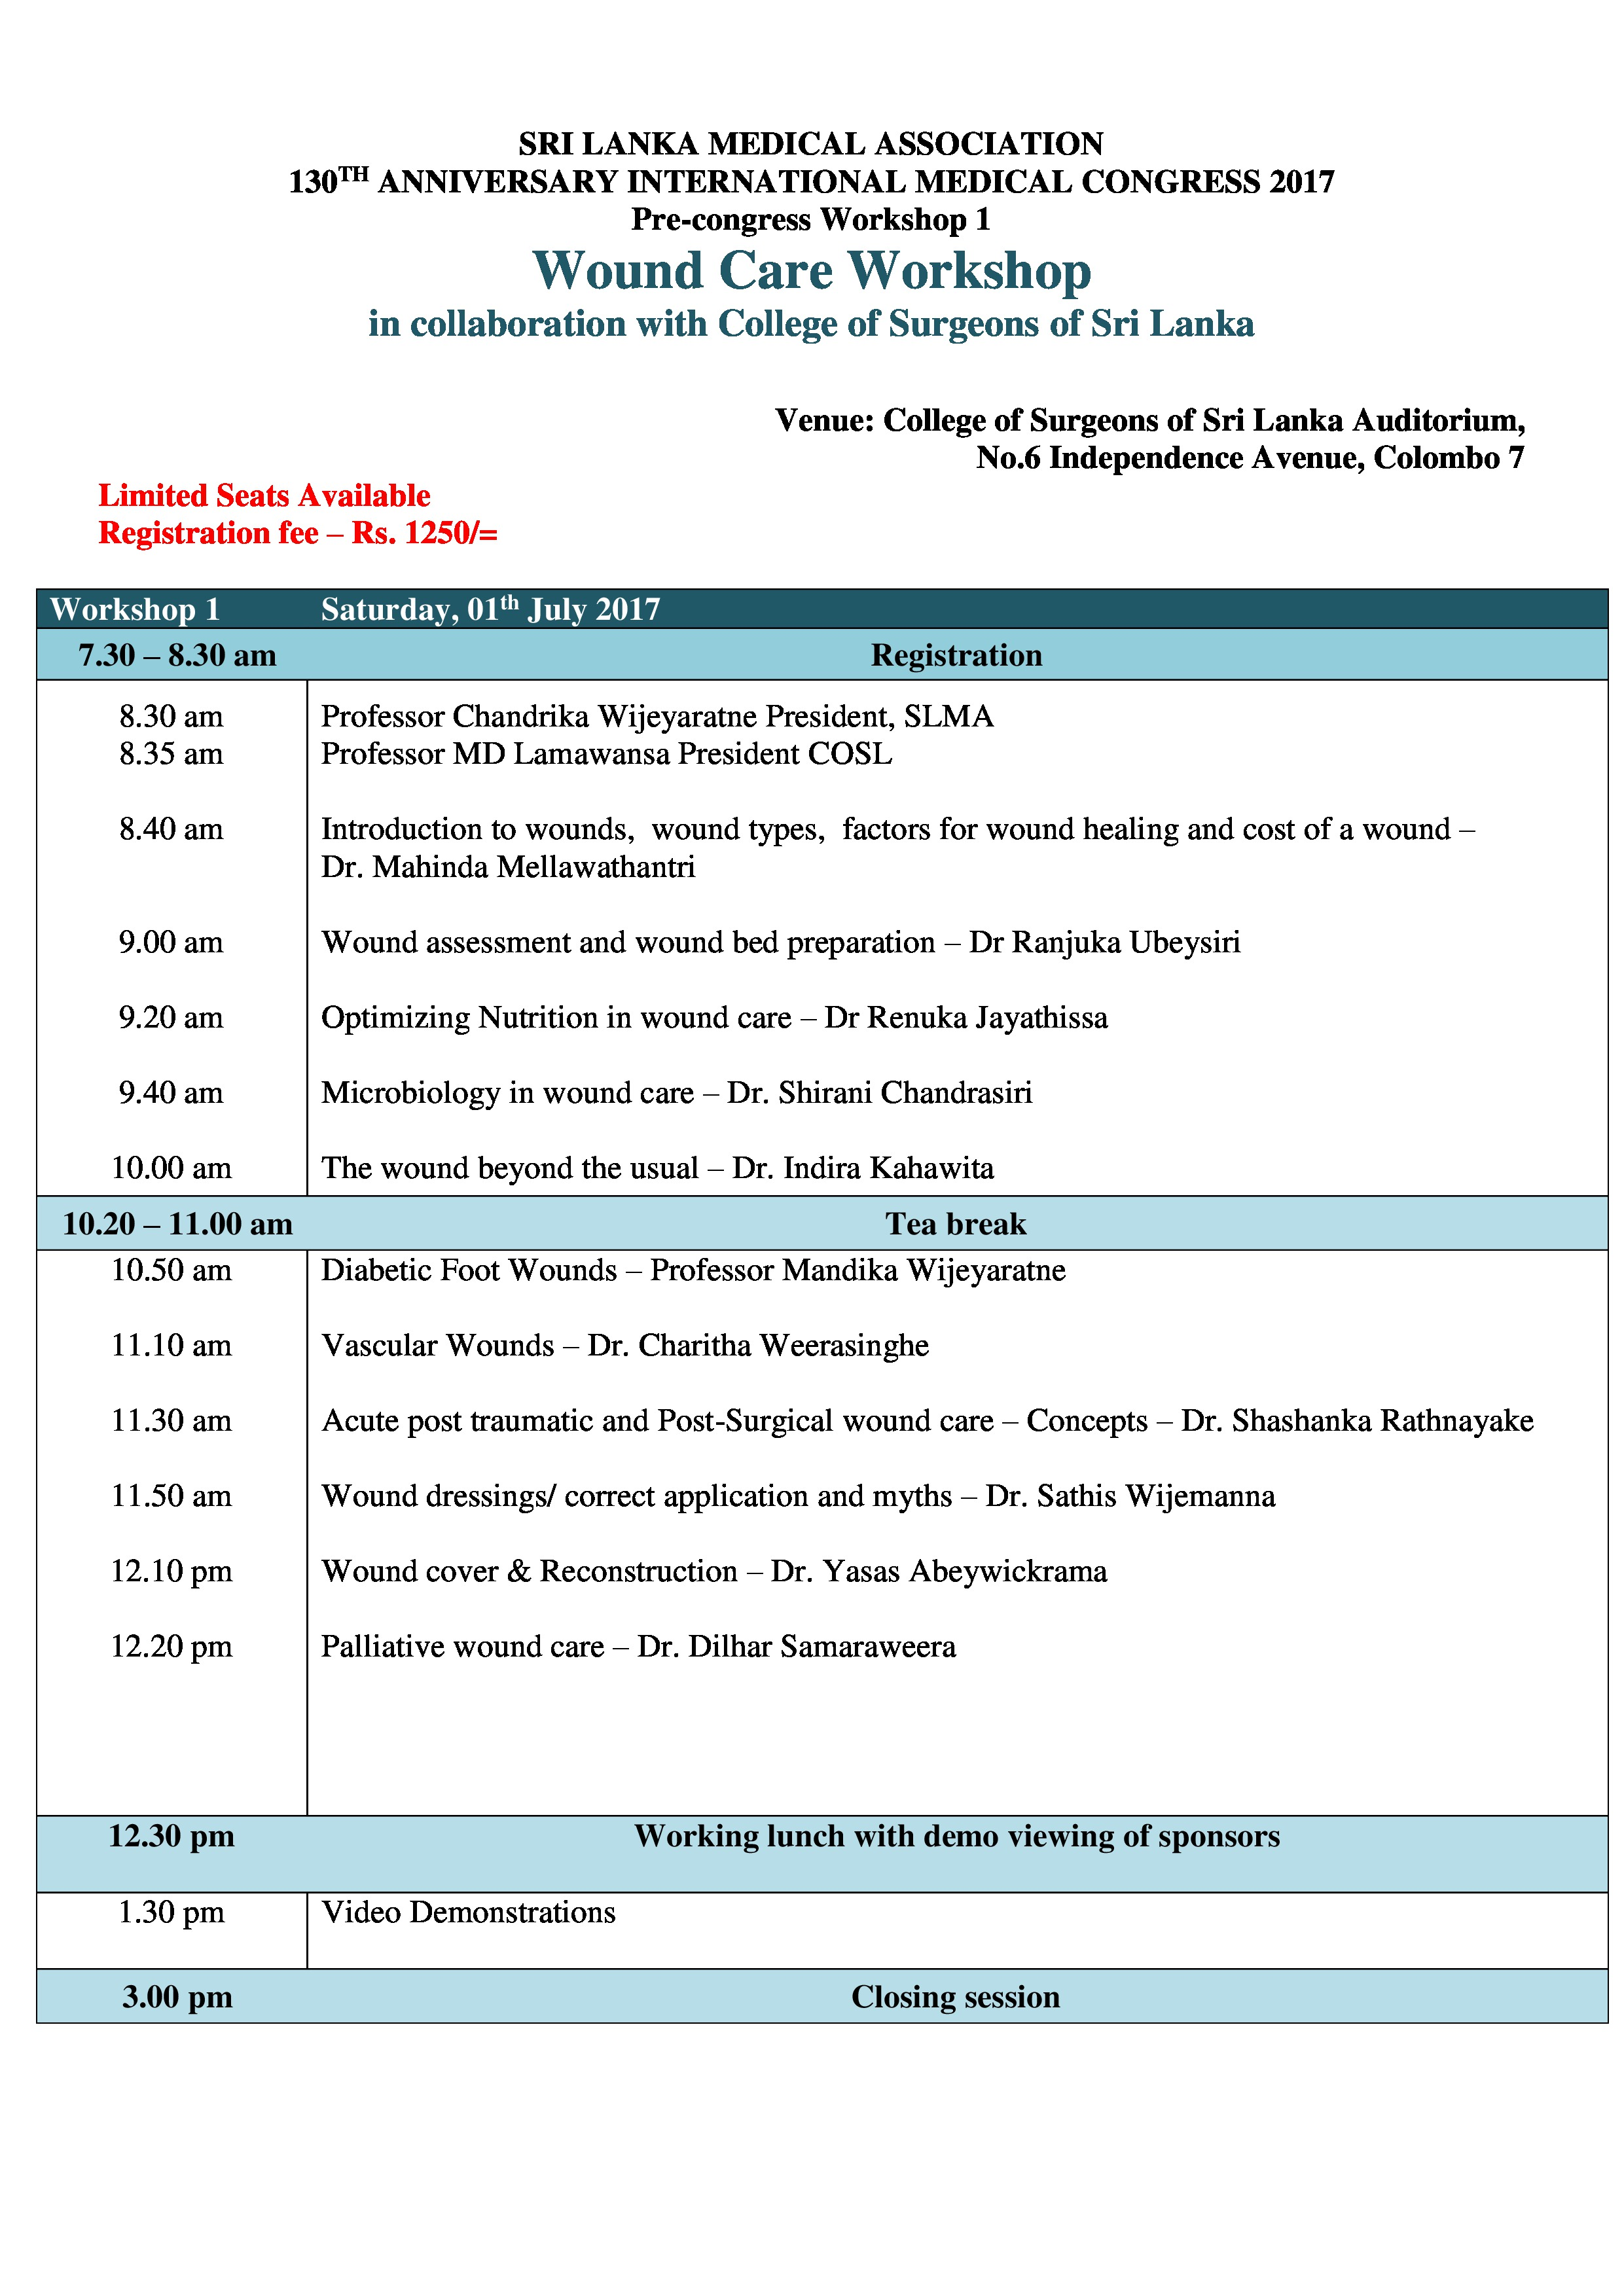 SLMA COSL Joint Workshop - Precongress 1 12.6.2017-page-0